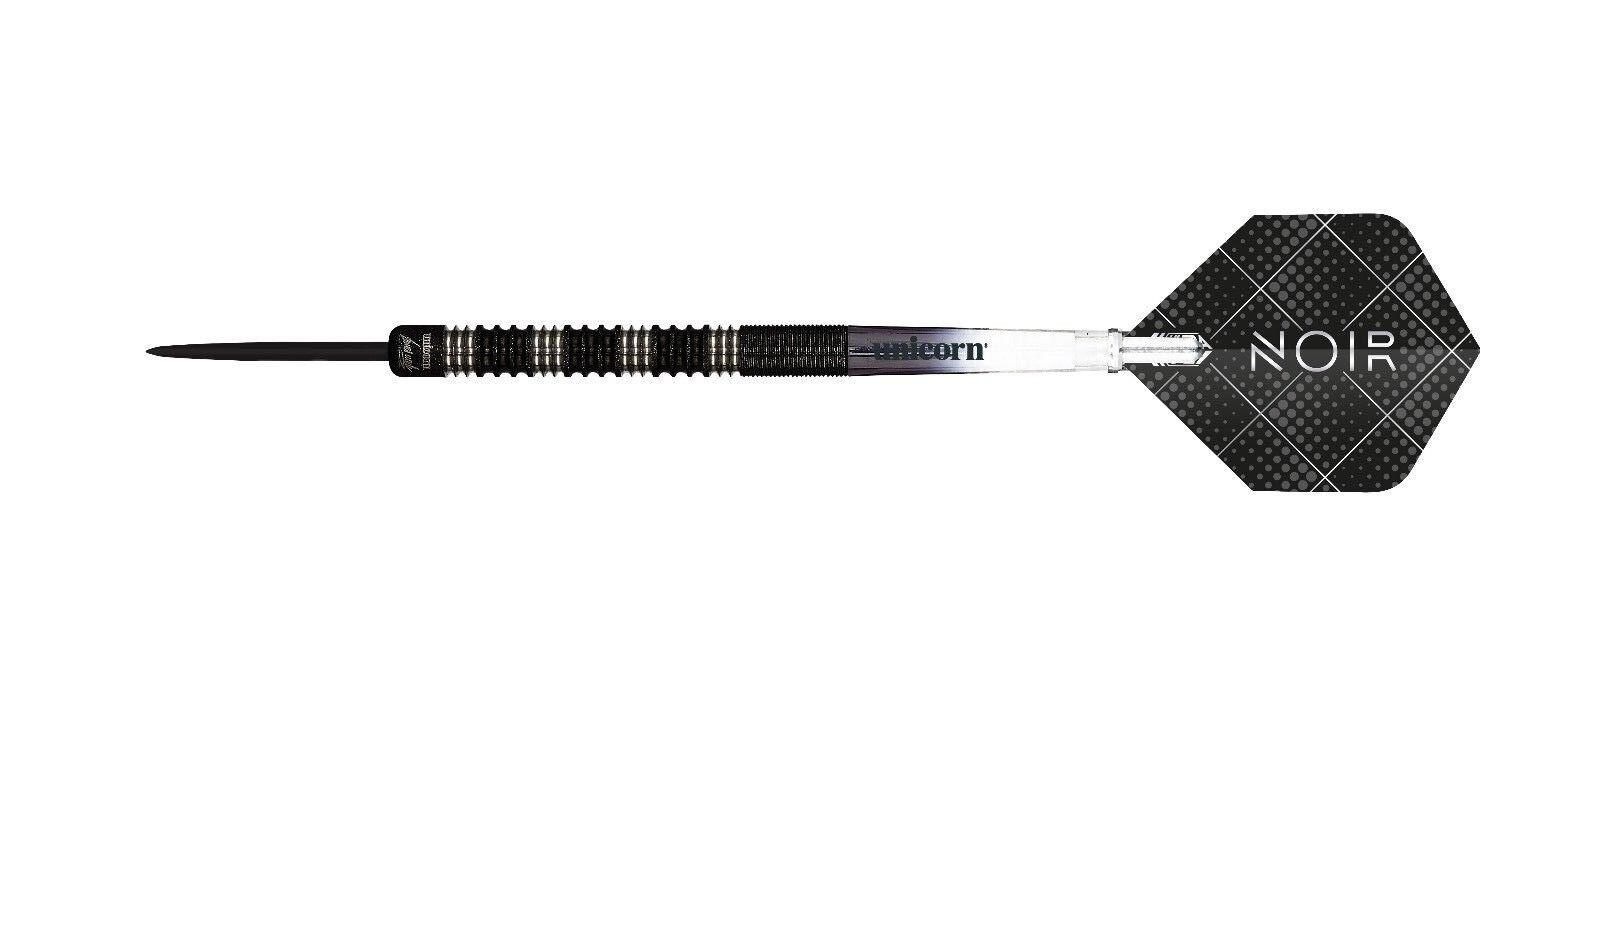 Unicorn James Wade black 90% Tungsten Darts - Available in 20g, 22g & 24g